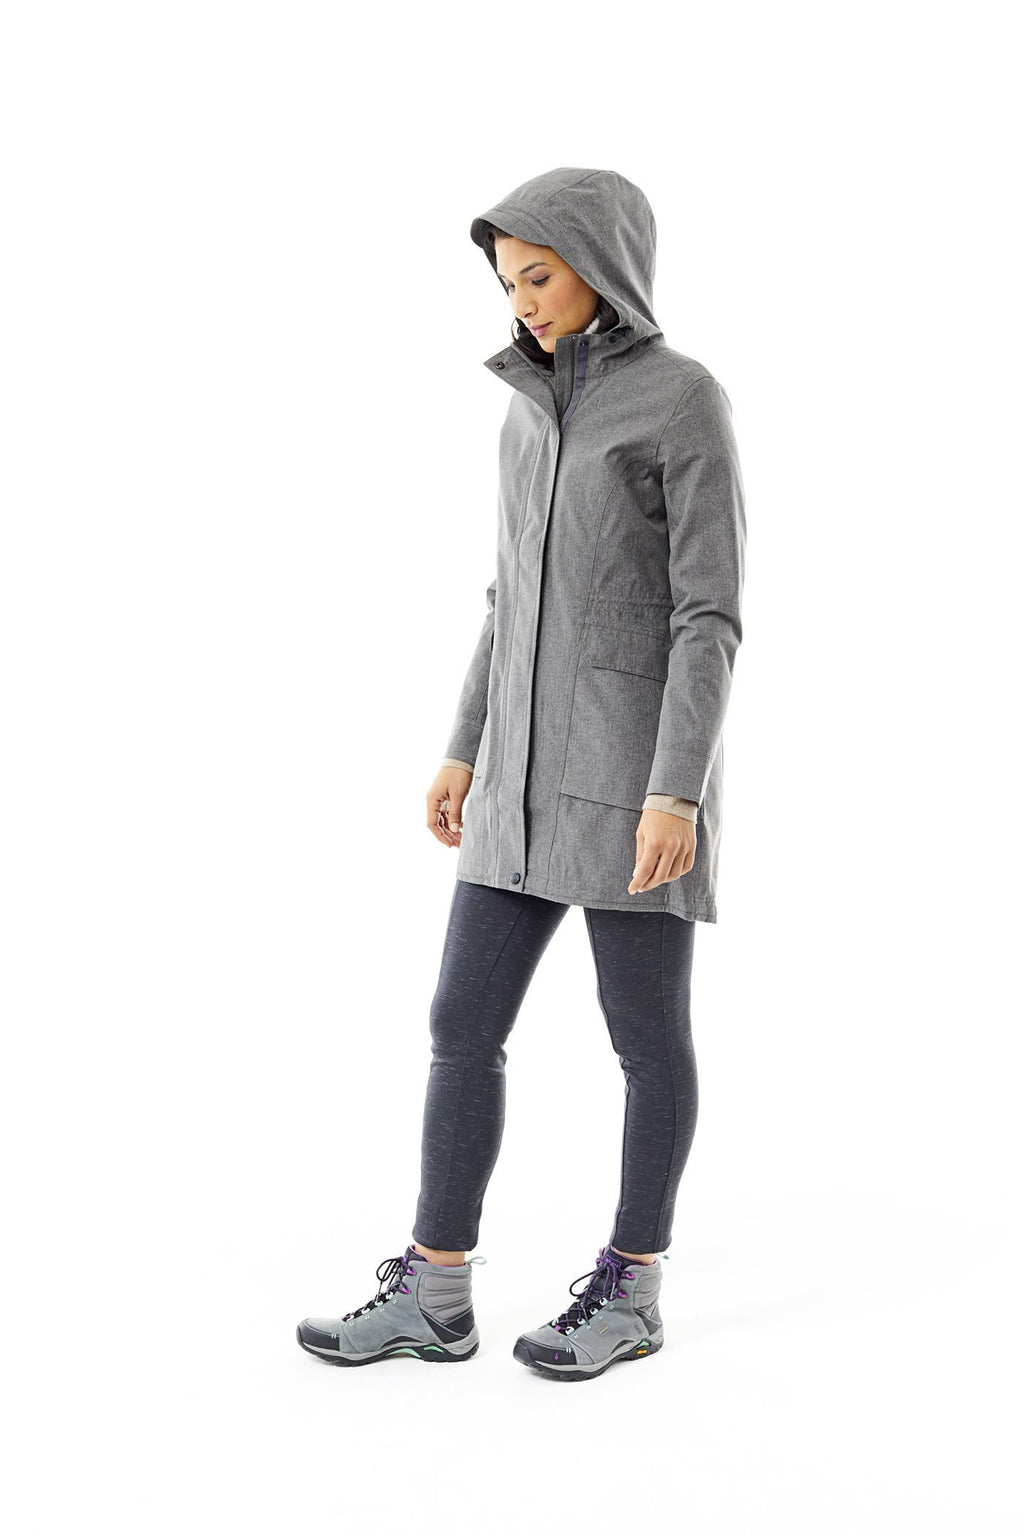 products/F18_38148_ASTORIA_WATERPROOF_JACKET_pewter_732_6057_ffc1d201-0fc9-4790-8178-a731c8804a2a.jpg